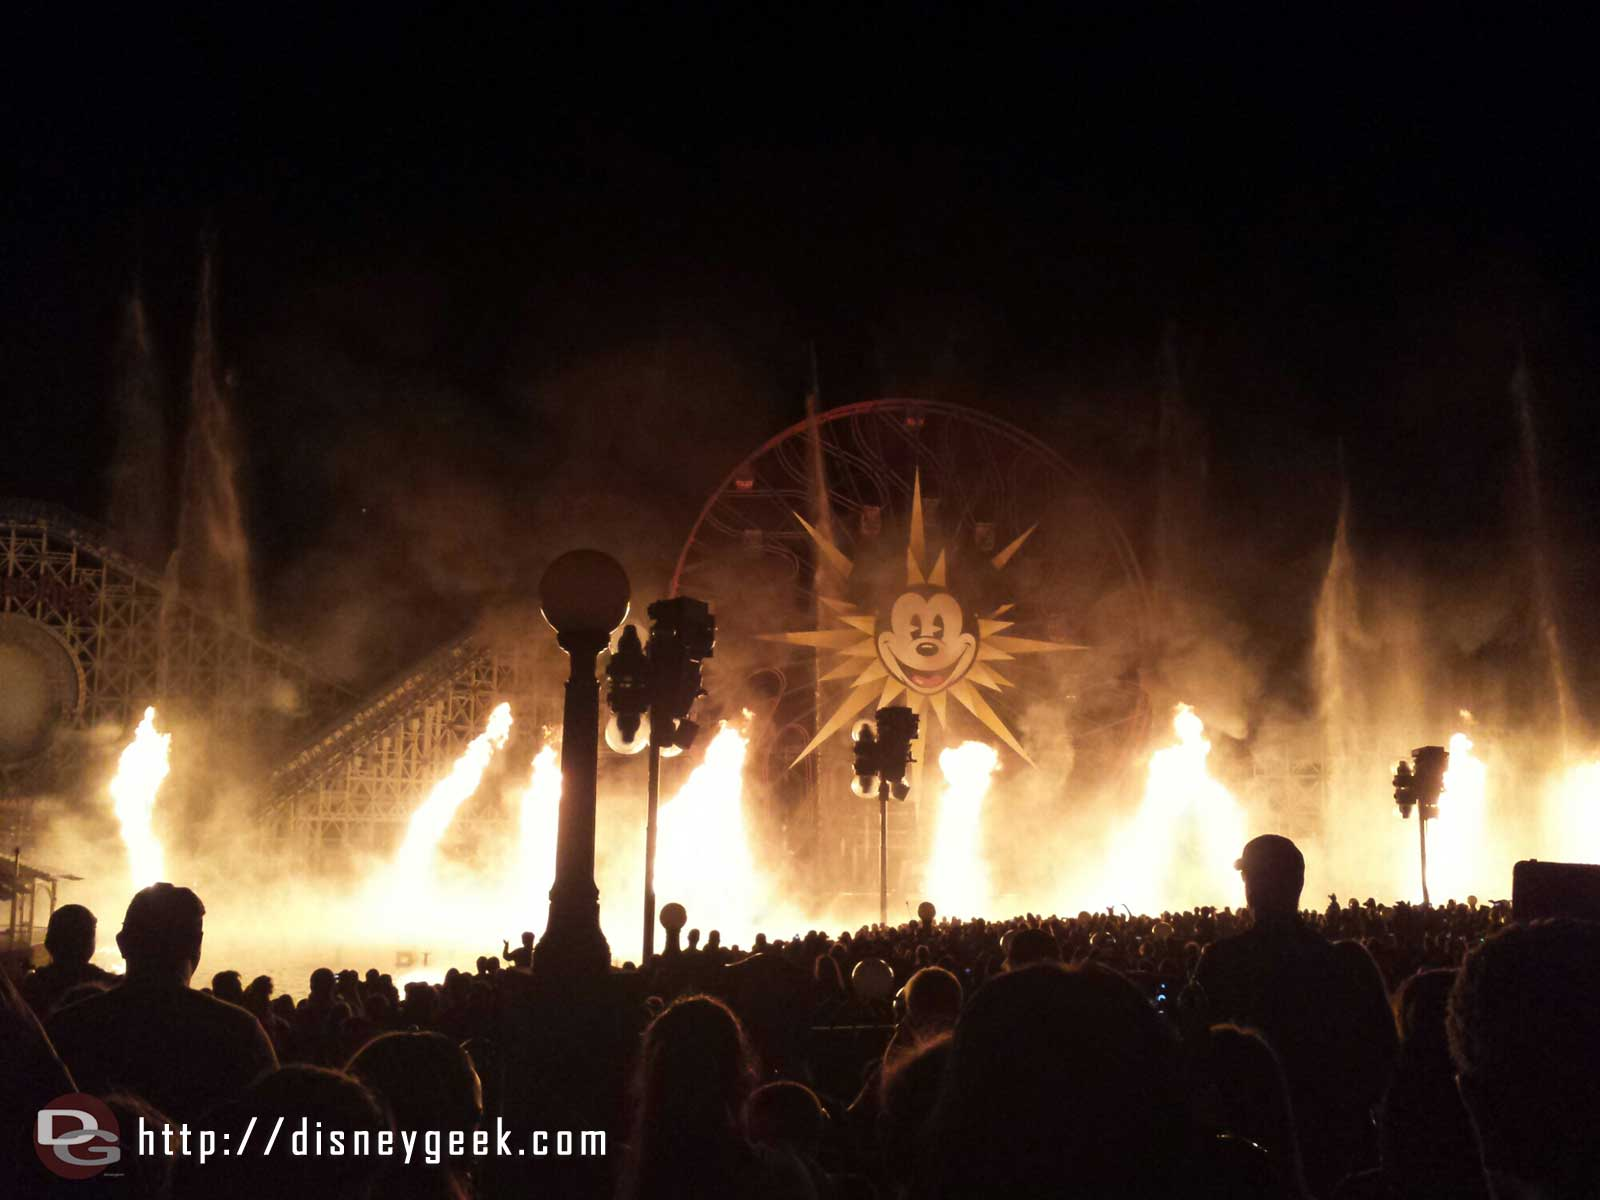 World of Color – Pirate's fire